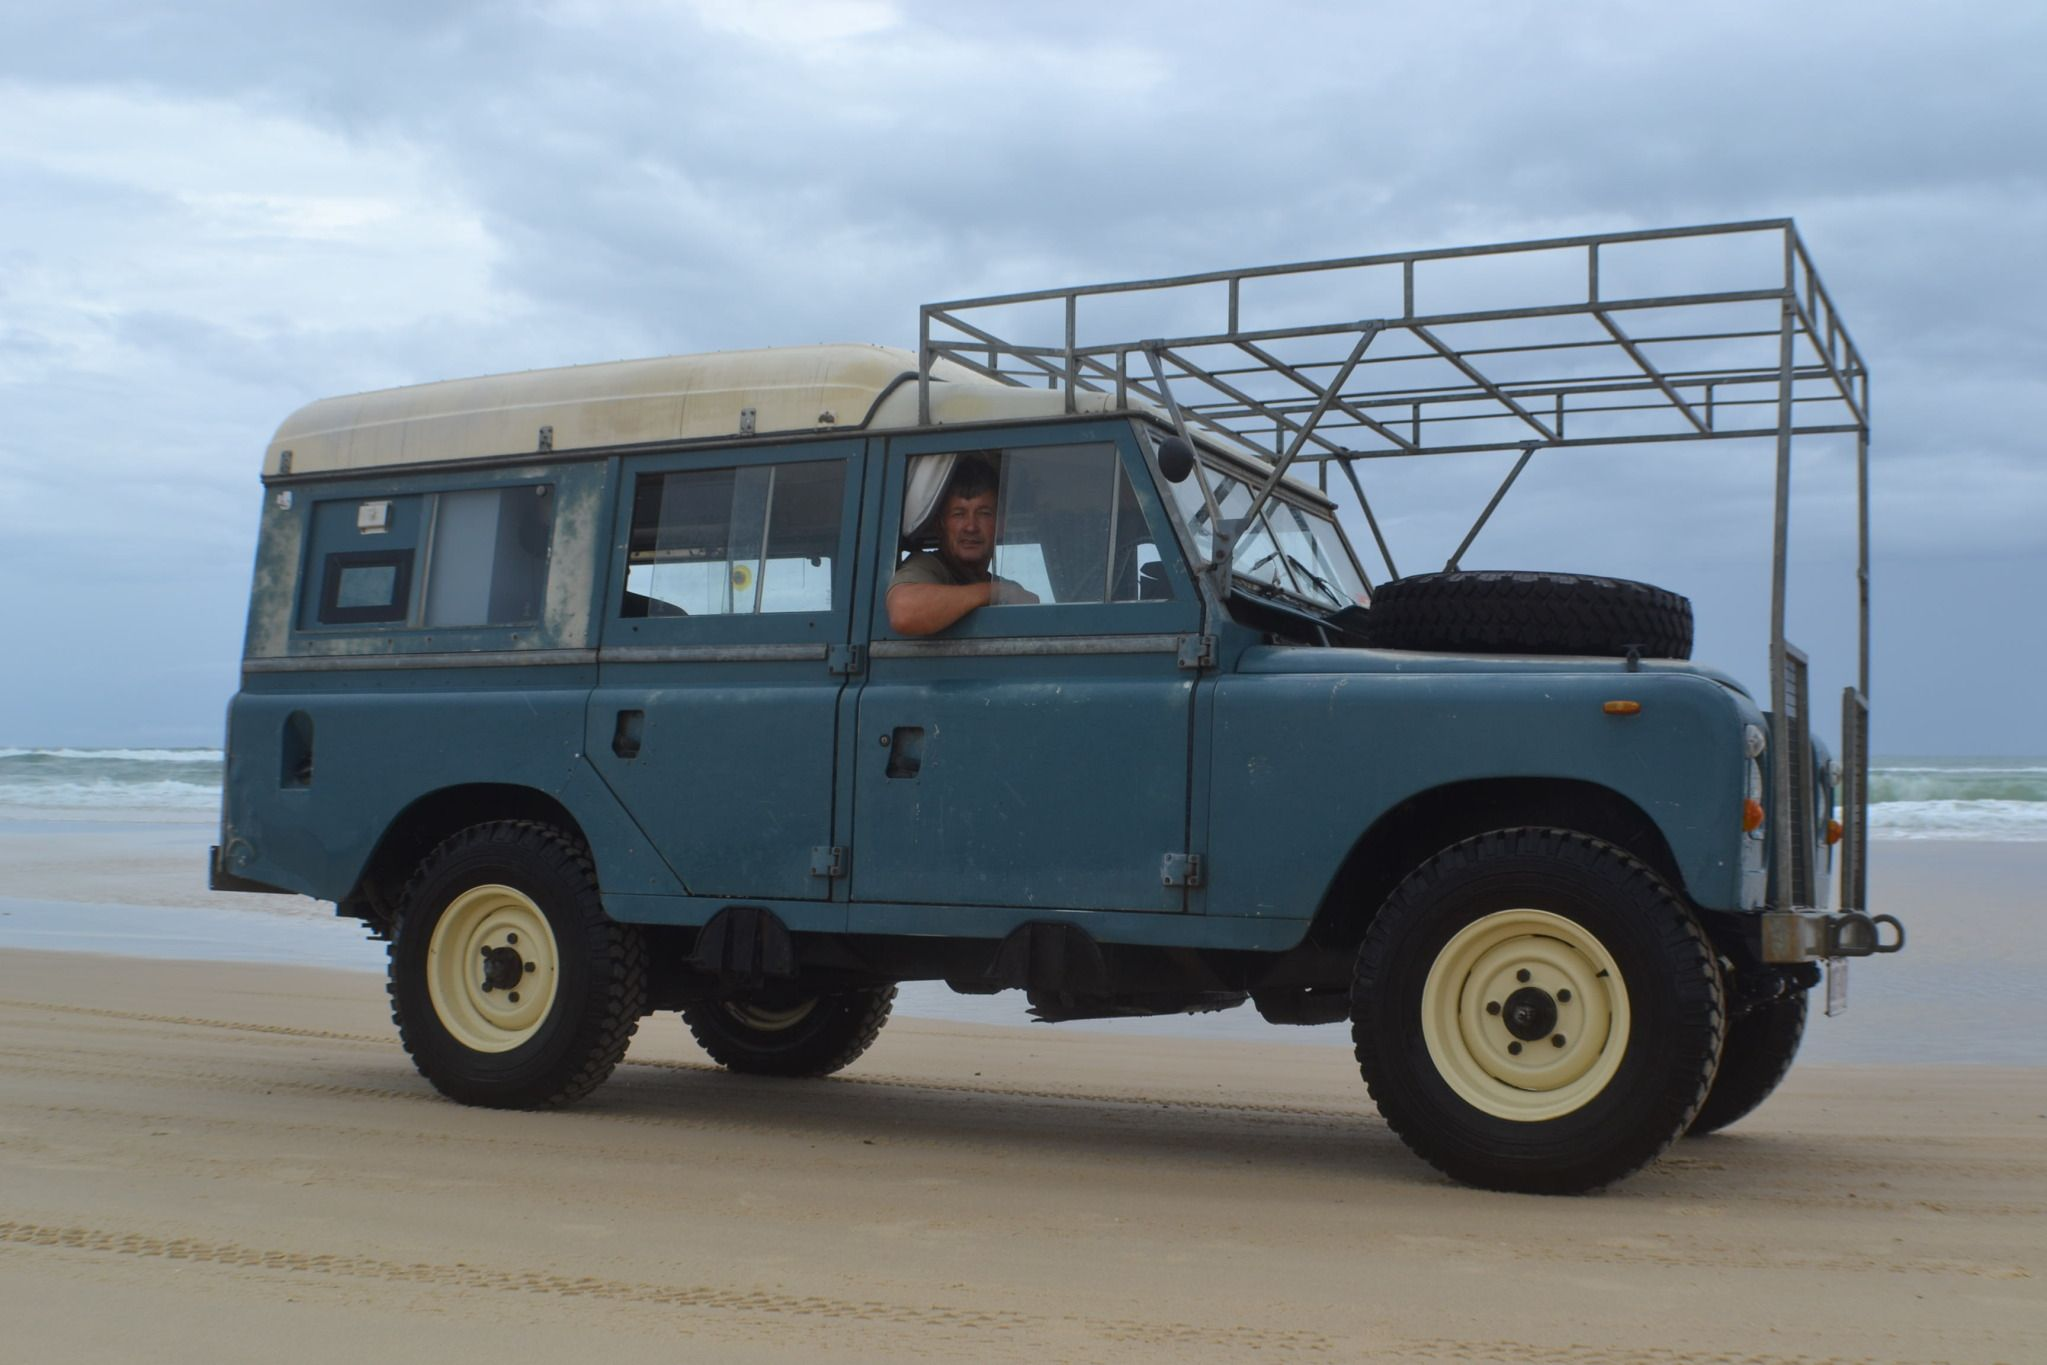 Land Rover Defender With Pop Up Roof And Over Hood Rack Land Rover Series Land Rover Defender Land Rover